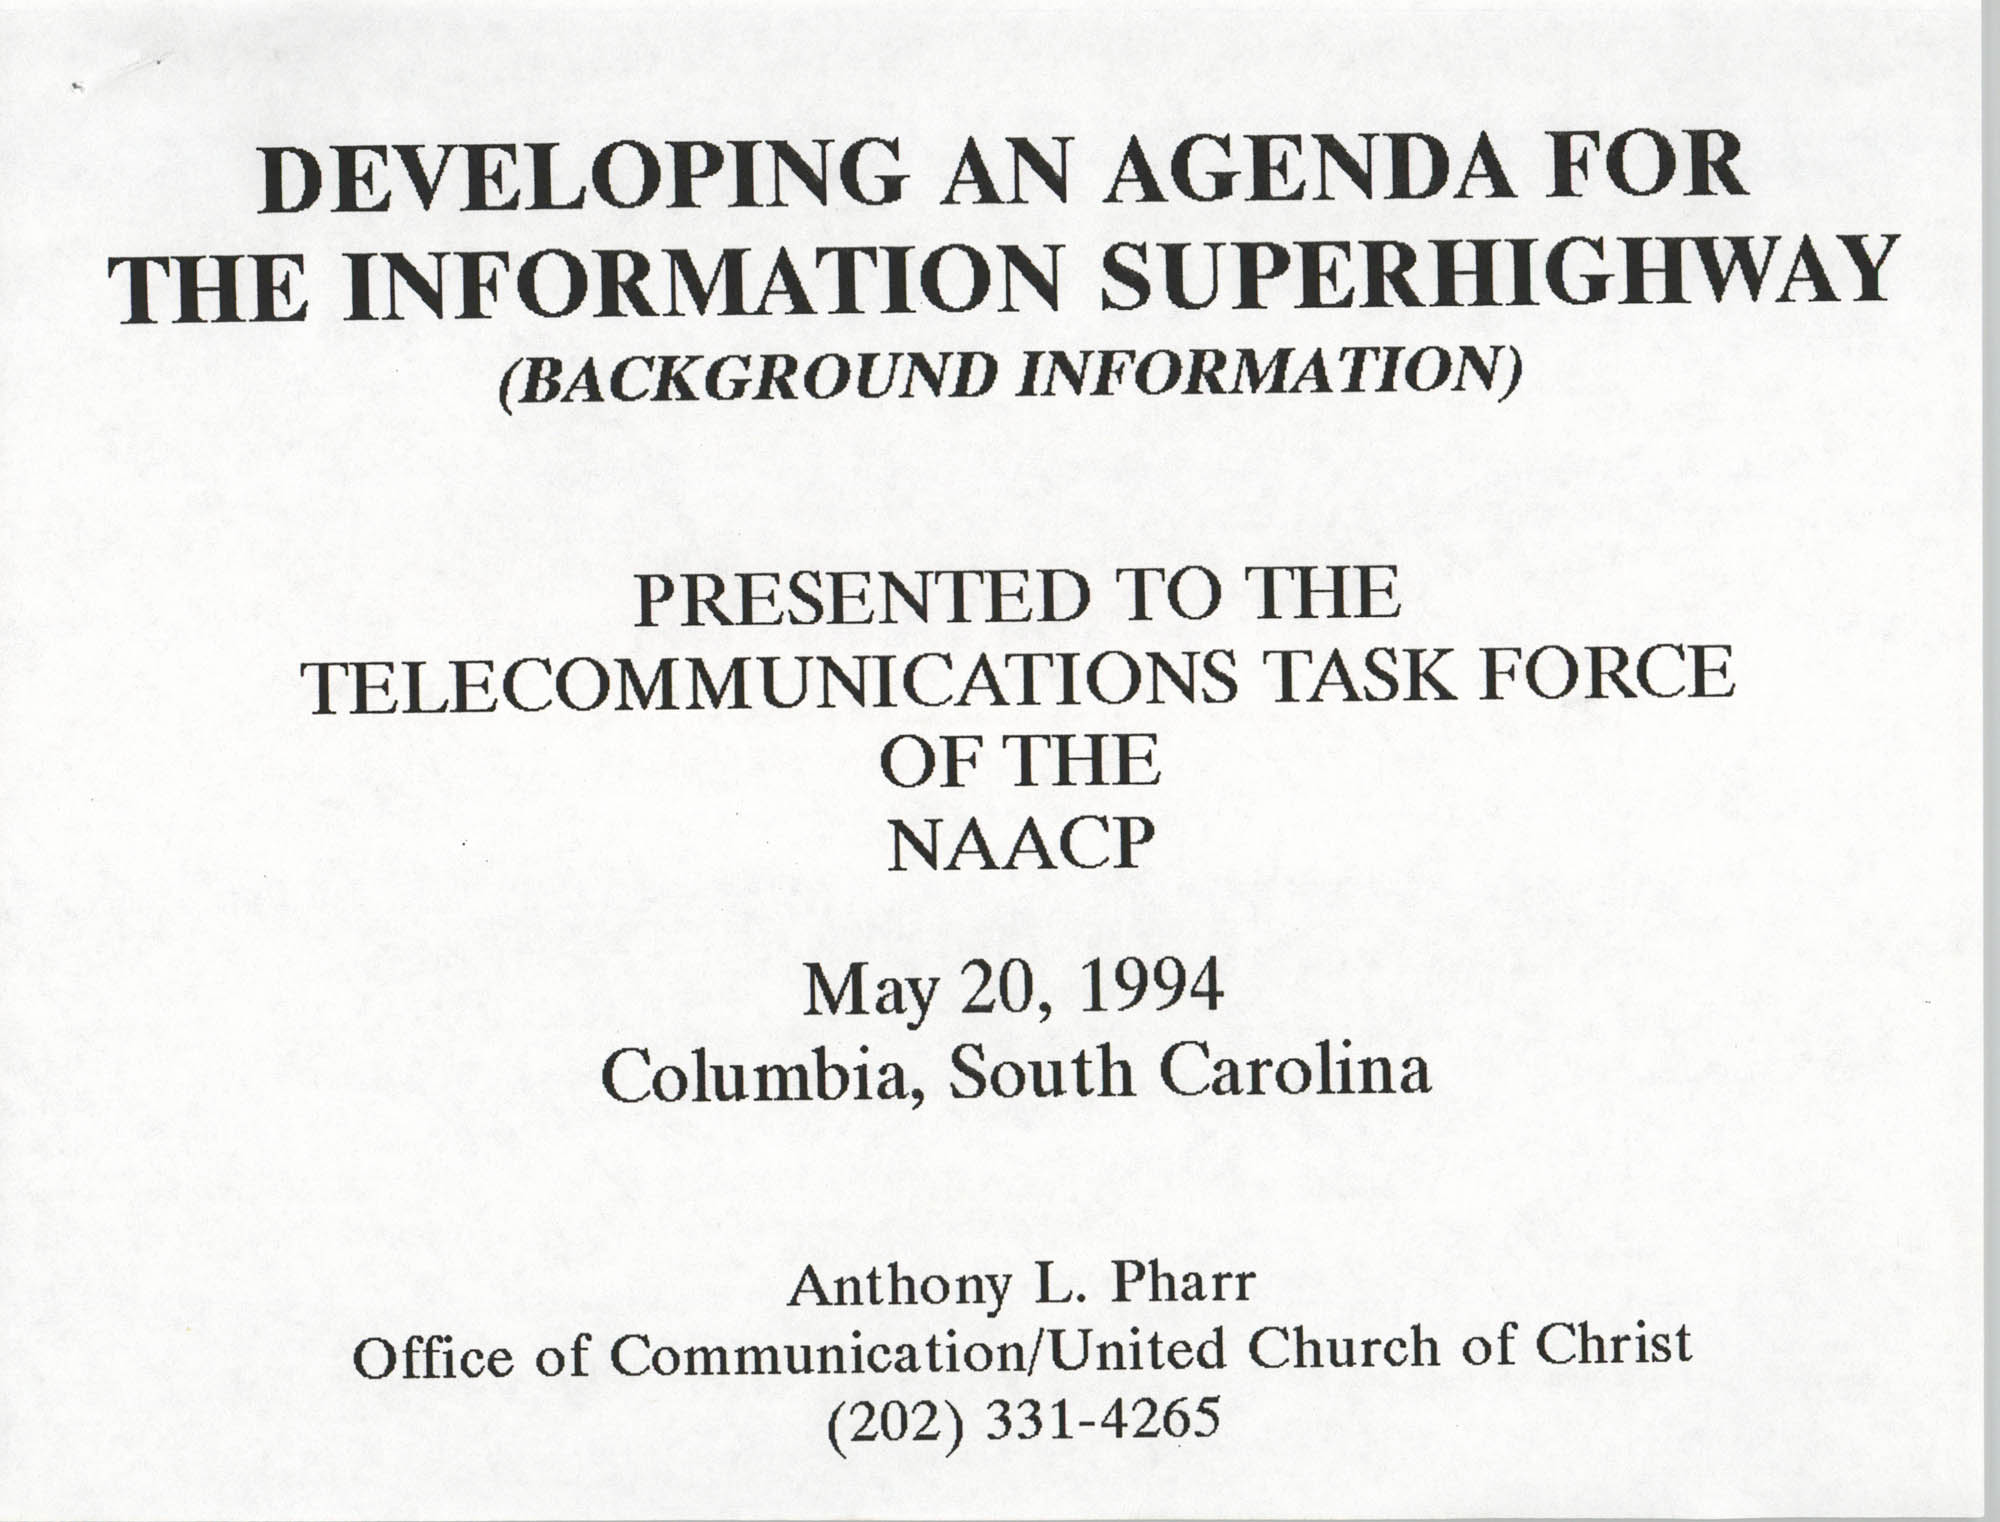 Developing an Agenda for the Information Superhighway, Anthony L. Pharr, May 20, 1994